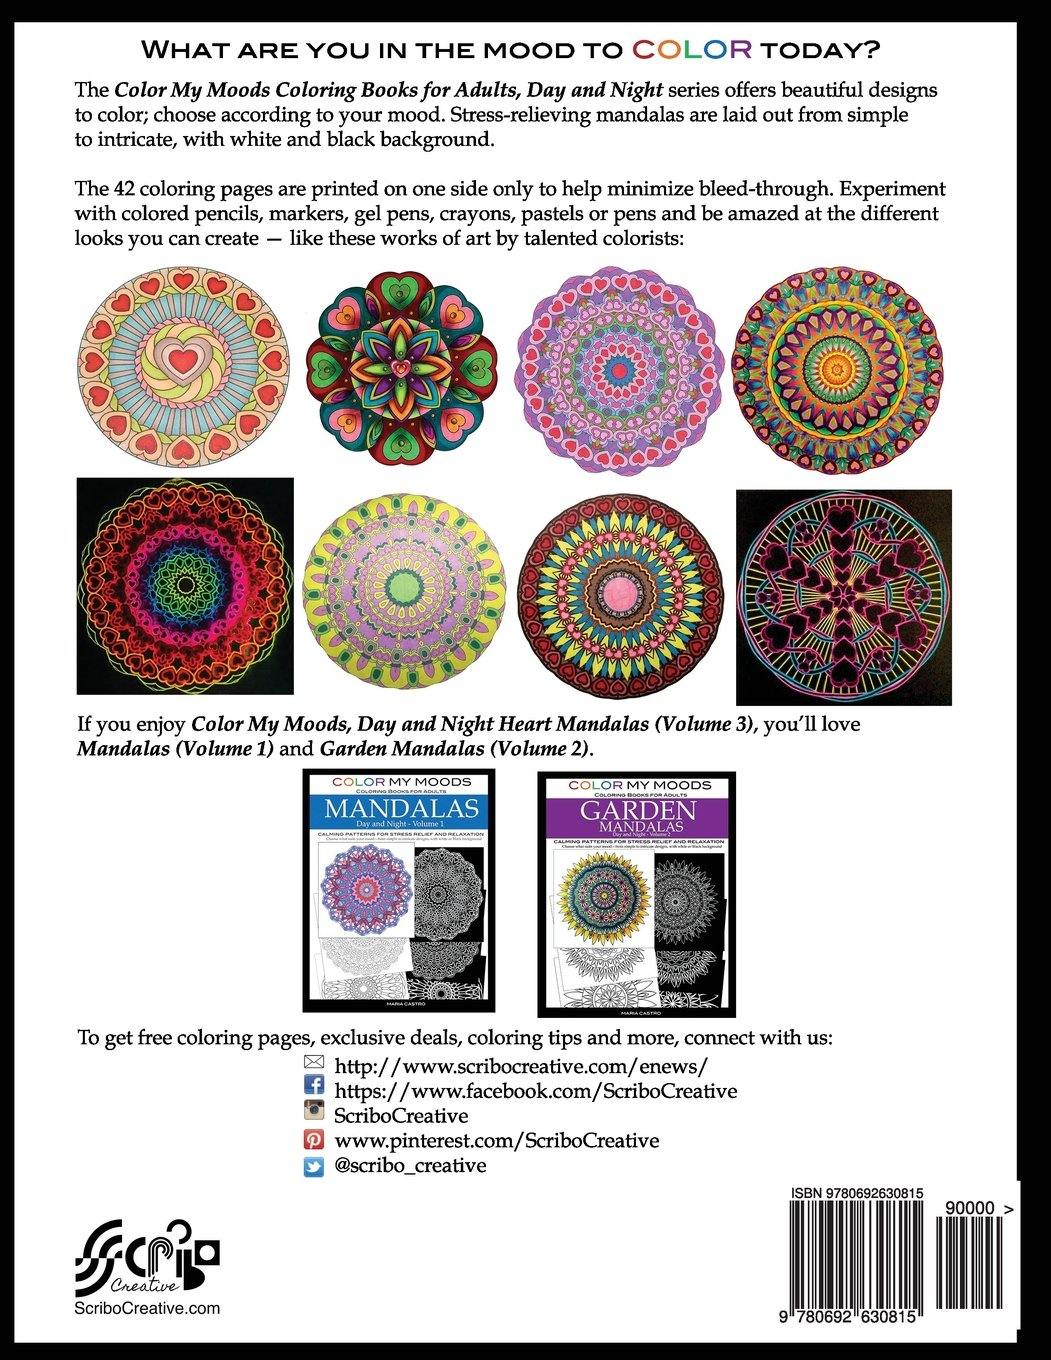 Color My Moods Coloring Books For Adults Day And Night Heart Mandalas Volume 3 Calming Mandala Patterns Stress Relief Relaxation To Help